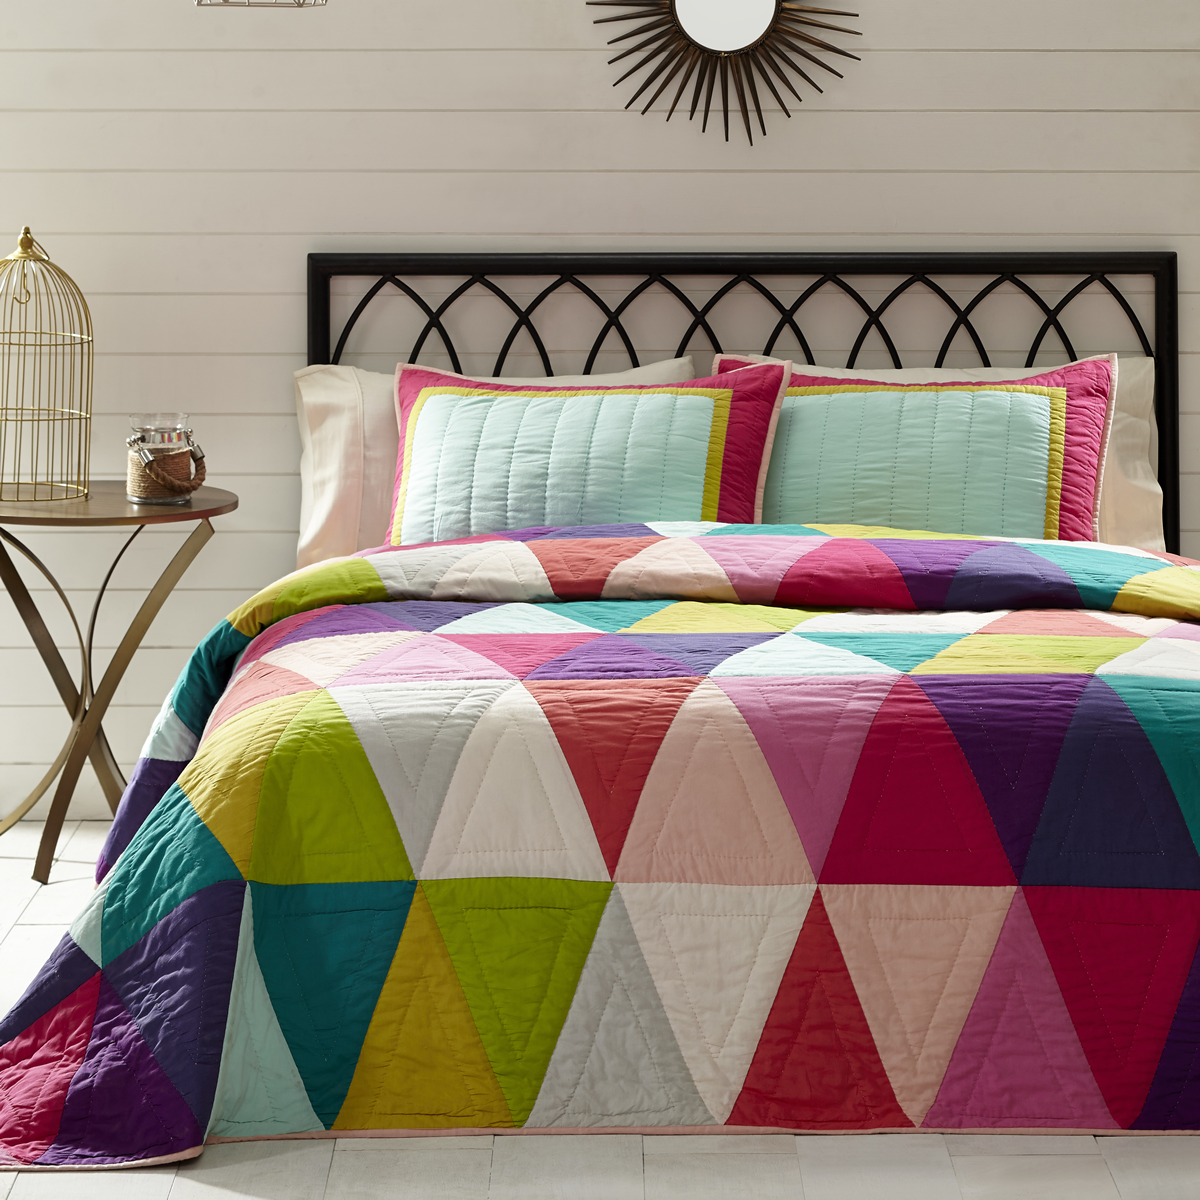 Patchwork bed sheets patterns - Triangle Quilt Made From Only Solids Modern Bed Quilt